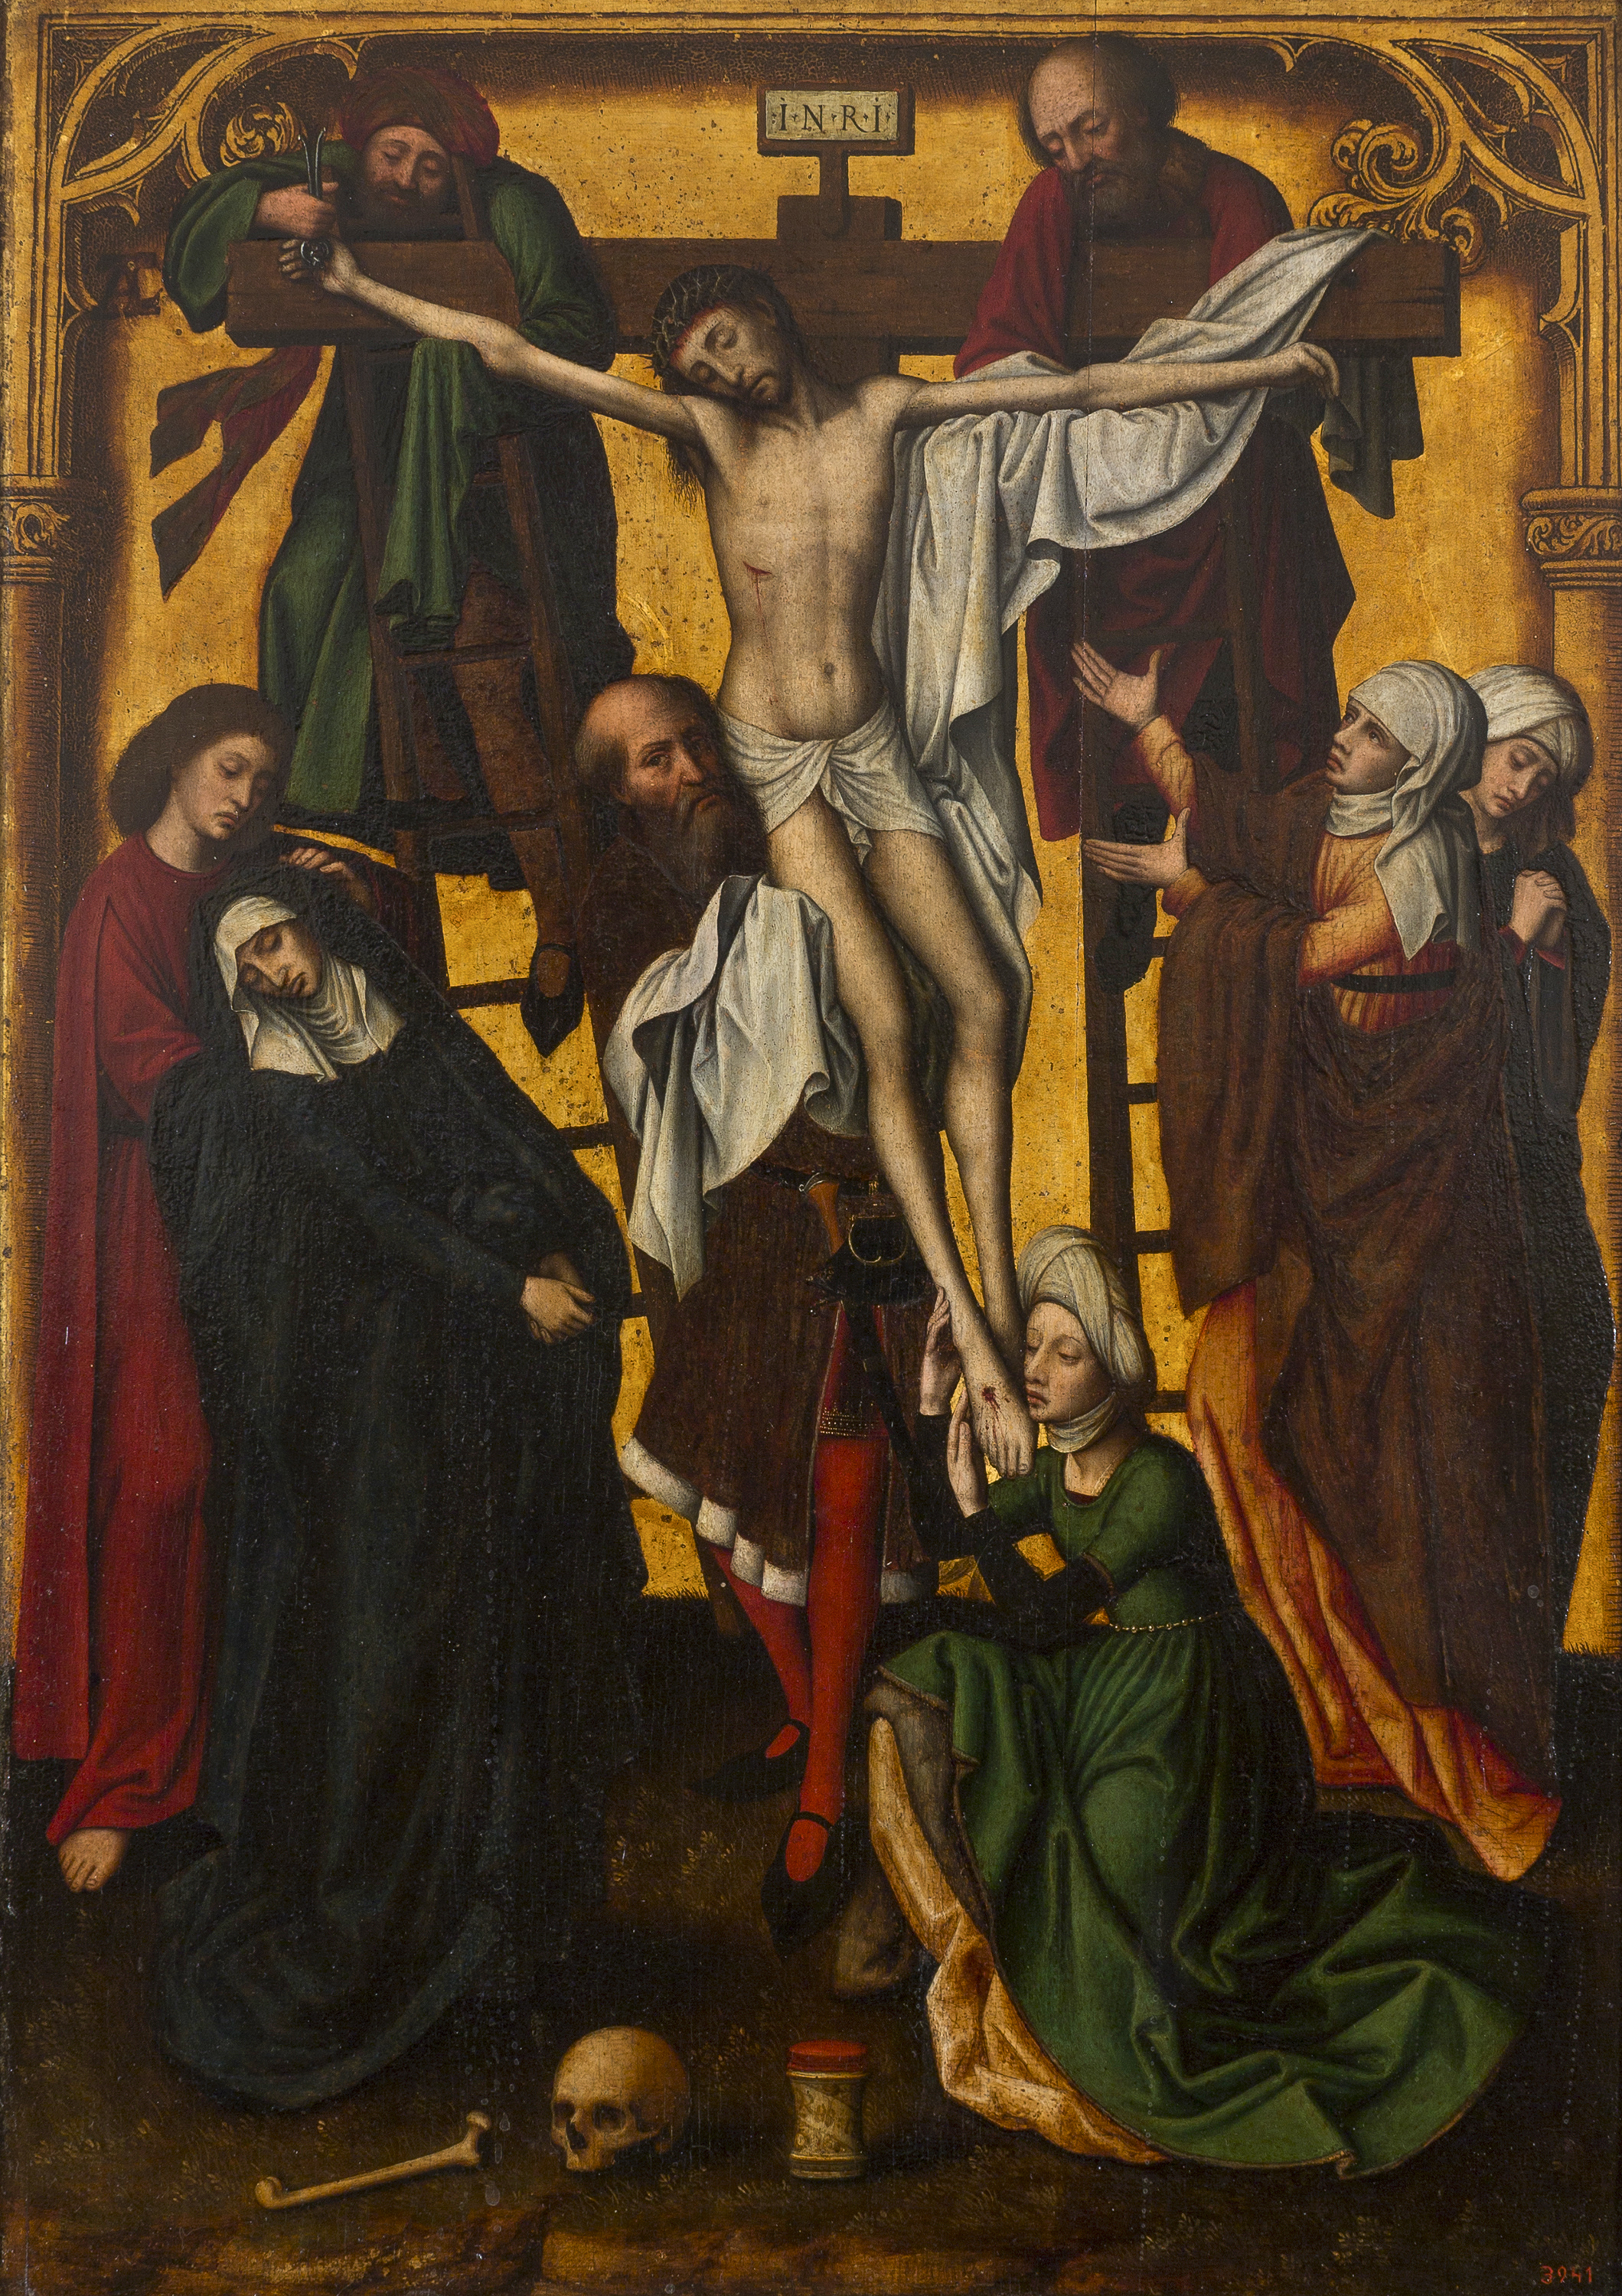 Marcellus Coffermans, Descendimiento de la cruz, tercer cuarto del siglo XVI